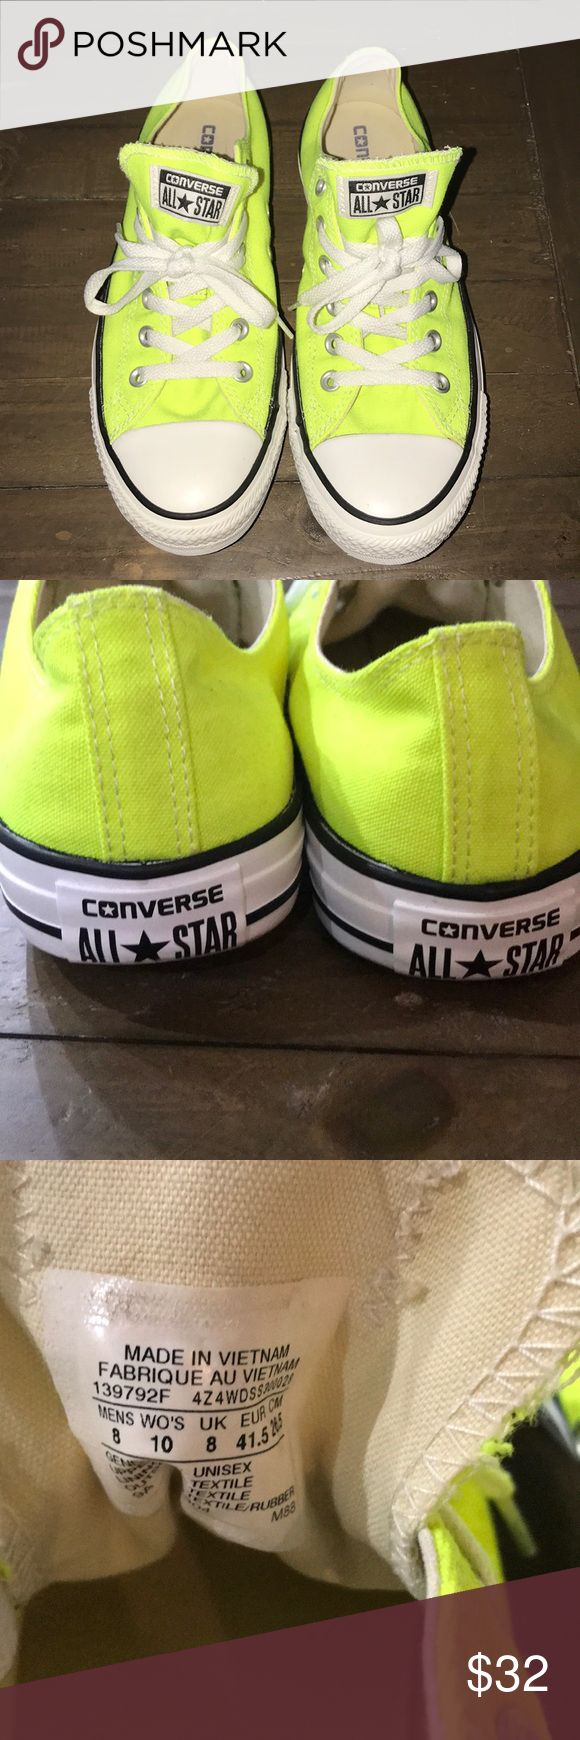 Unisex Converse All Star Neon Yellow Unisex Converse All Star Neon Yellow Worn once - Great Condition  Women's 8 Men's 10 Converse Shoes Sneakers #sneakersconverse